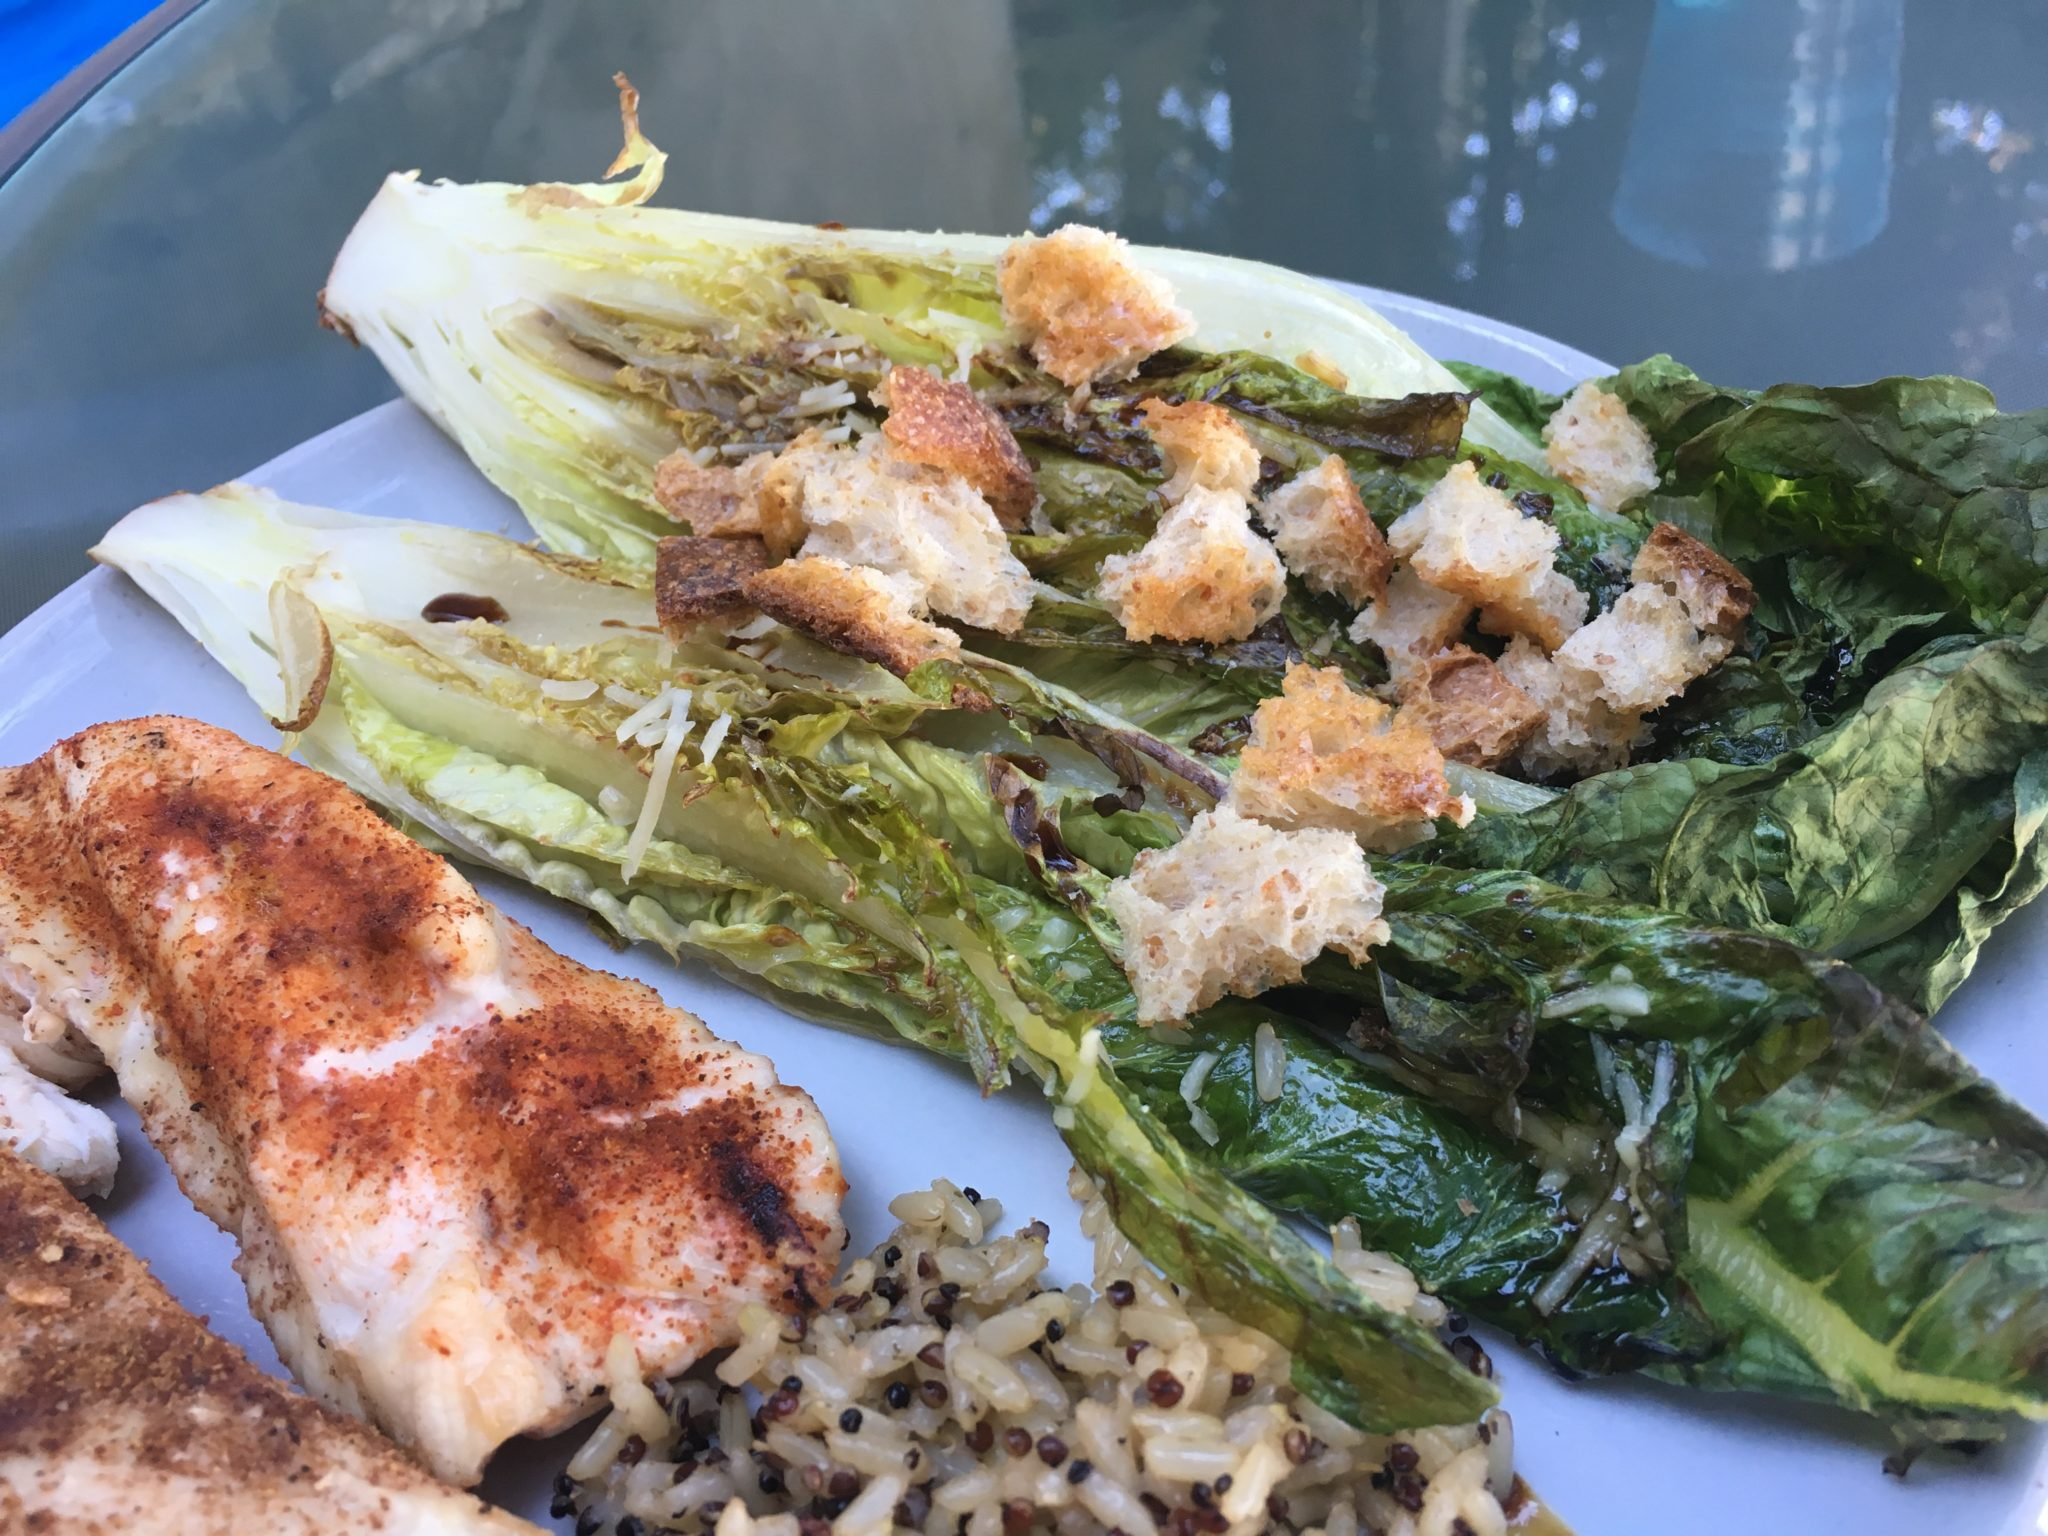 Grilled Romaine Hearts with Dijon Vinaigrette